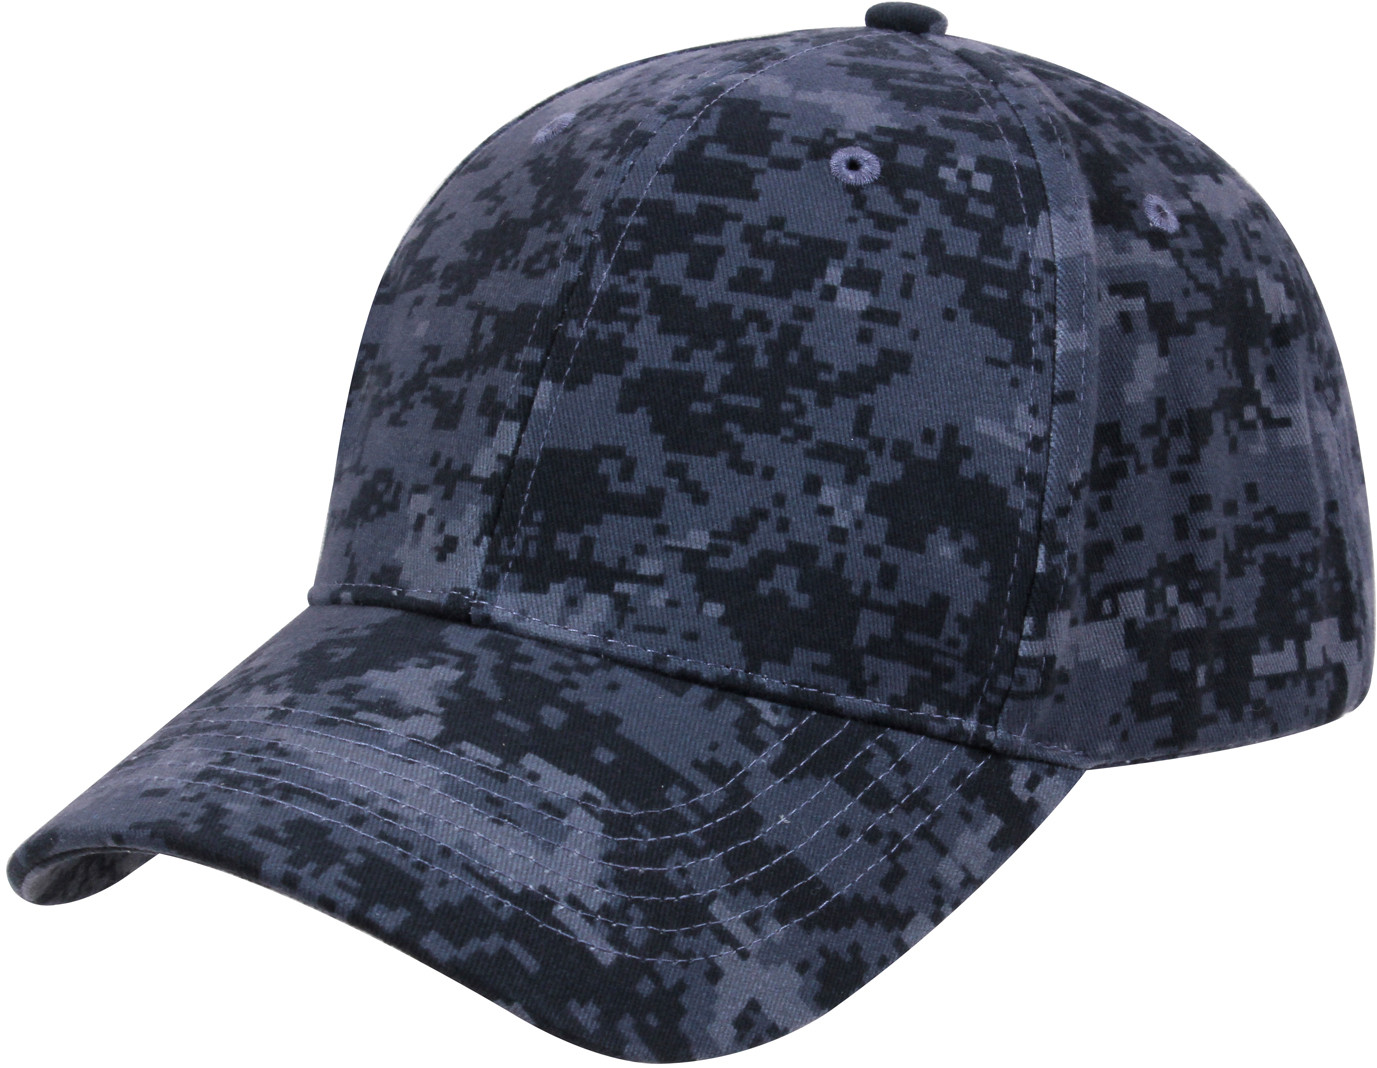 More Views. Midnight Digital Camouflage Supreme Military Low Profile Baseball  Cap 9868e076ba9